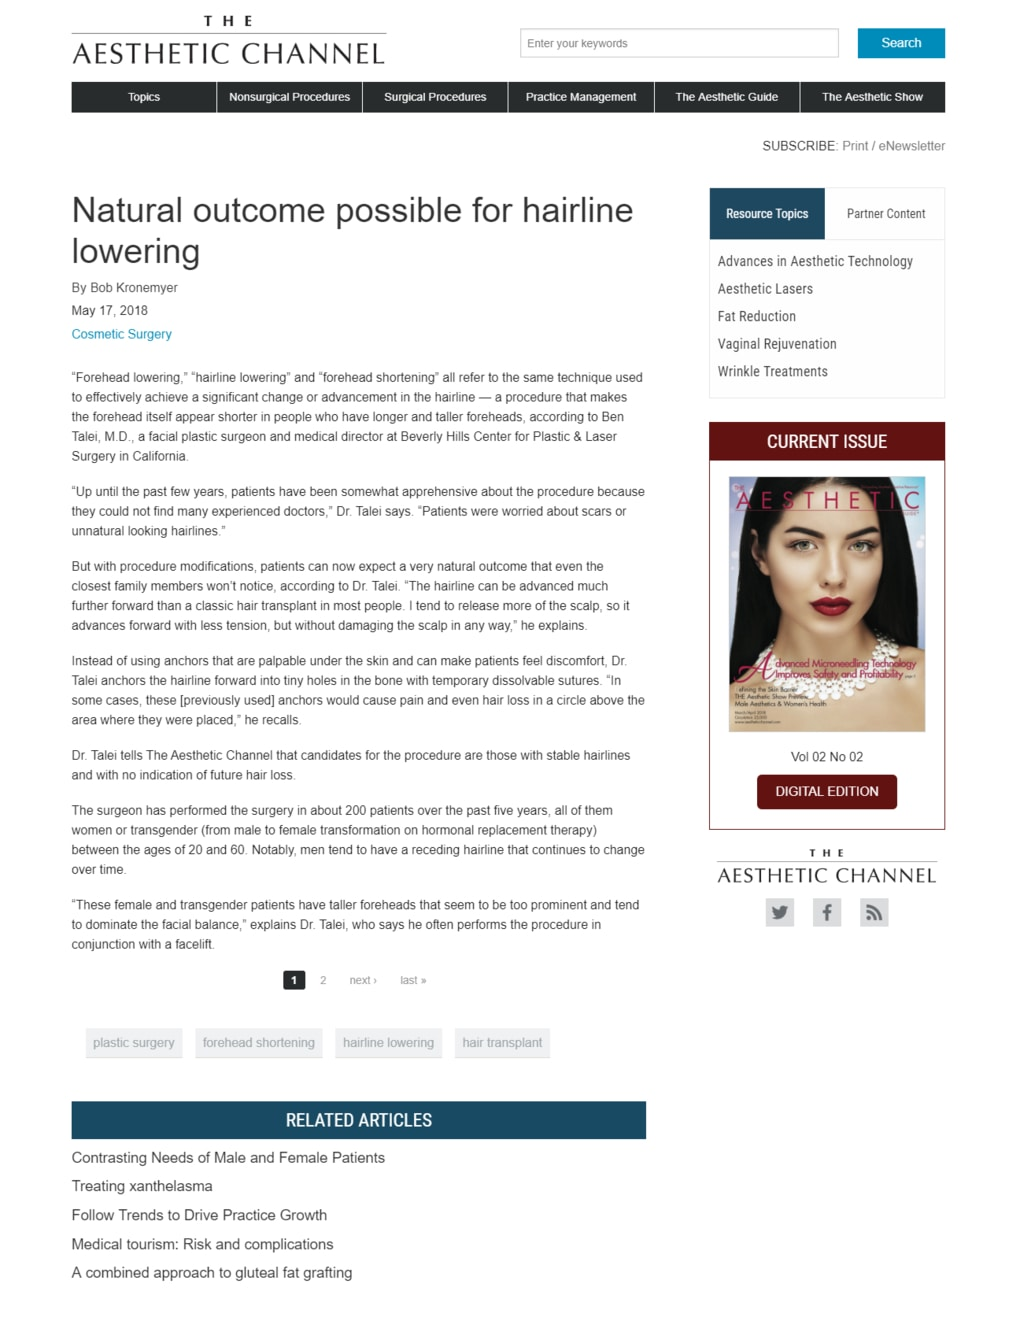 The article thumbnail: Natural outcome possible for hairline lowering